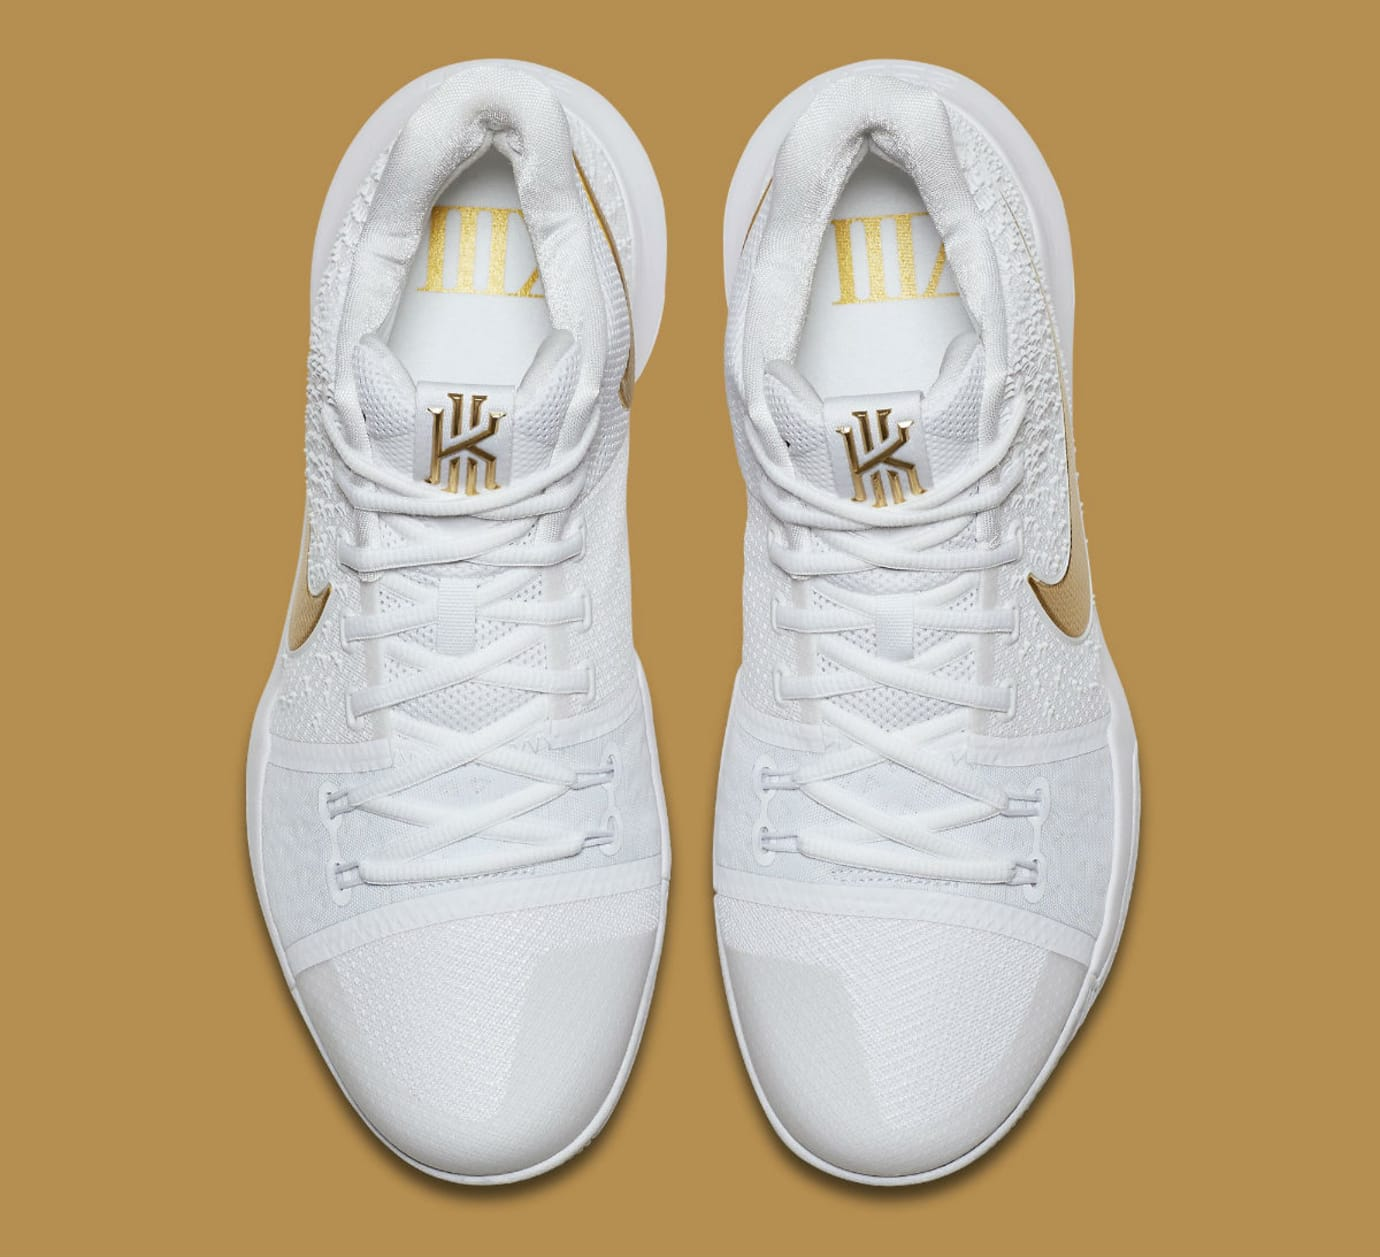 sale retailer 37a7b 94789 Nike Kyrie 3 White Gold Release Date Top 852396-902